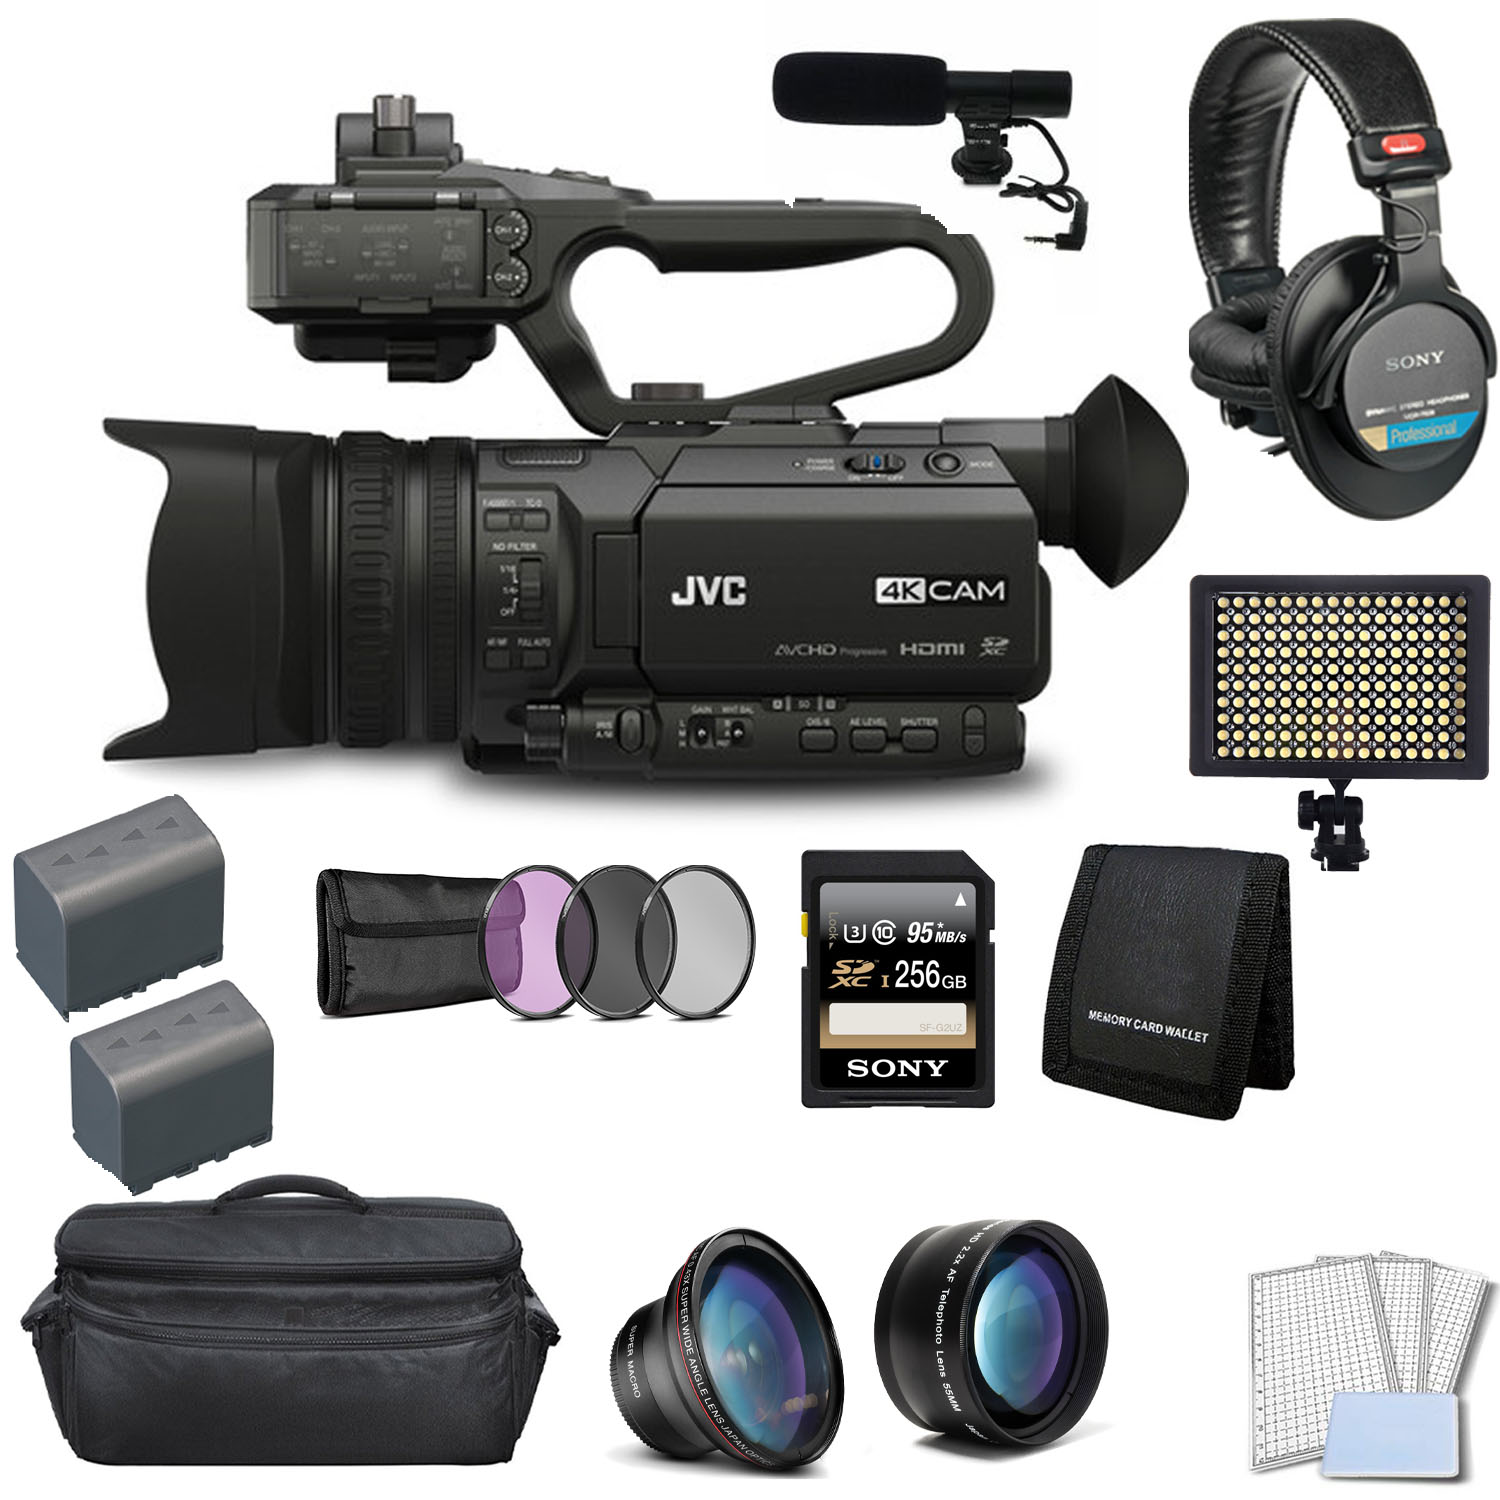 JVC 4KCAM Compact Professional Camcorder with Top Handle Unit Bundle with 256GB Memory Card + Microphone + Sony MDR-7506 Pro Headphones + More